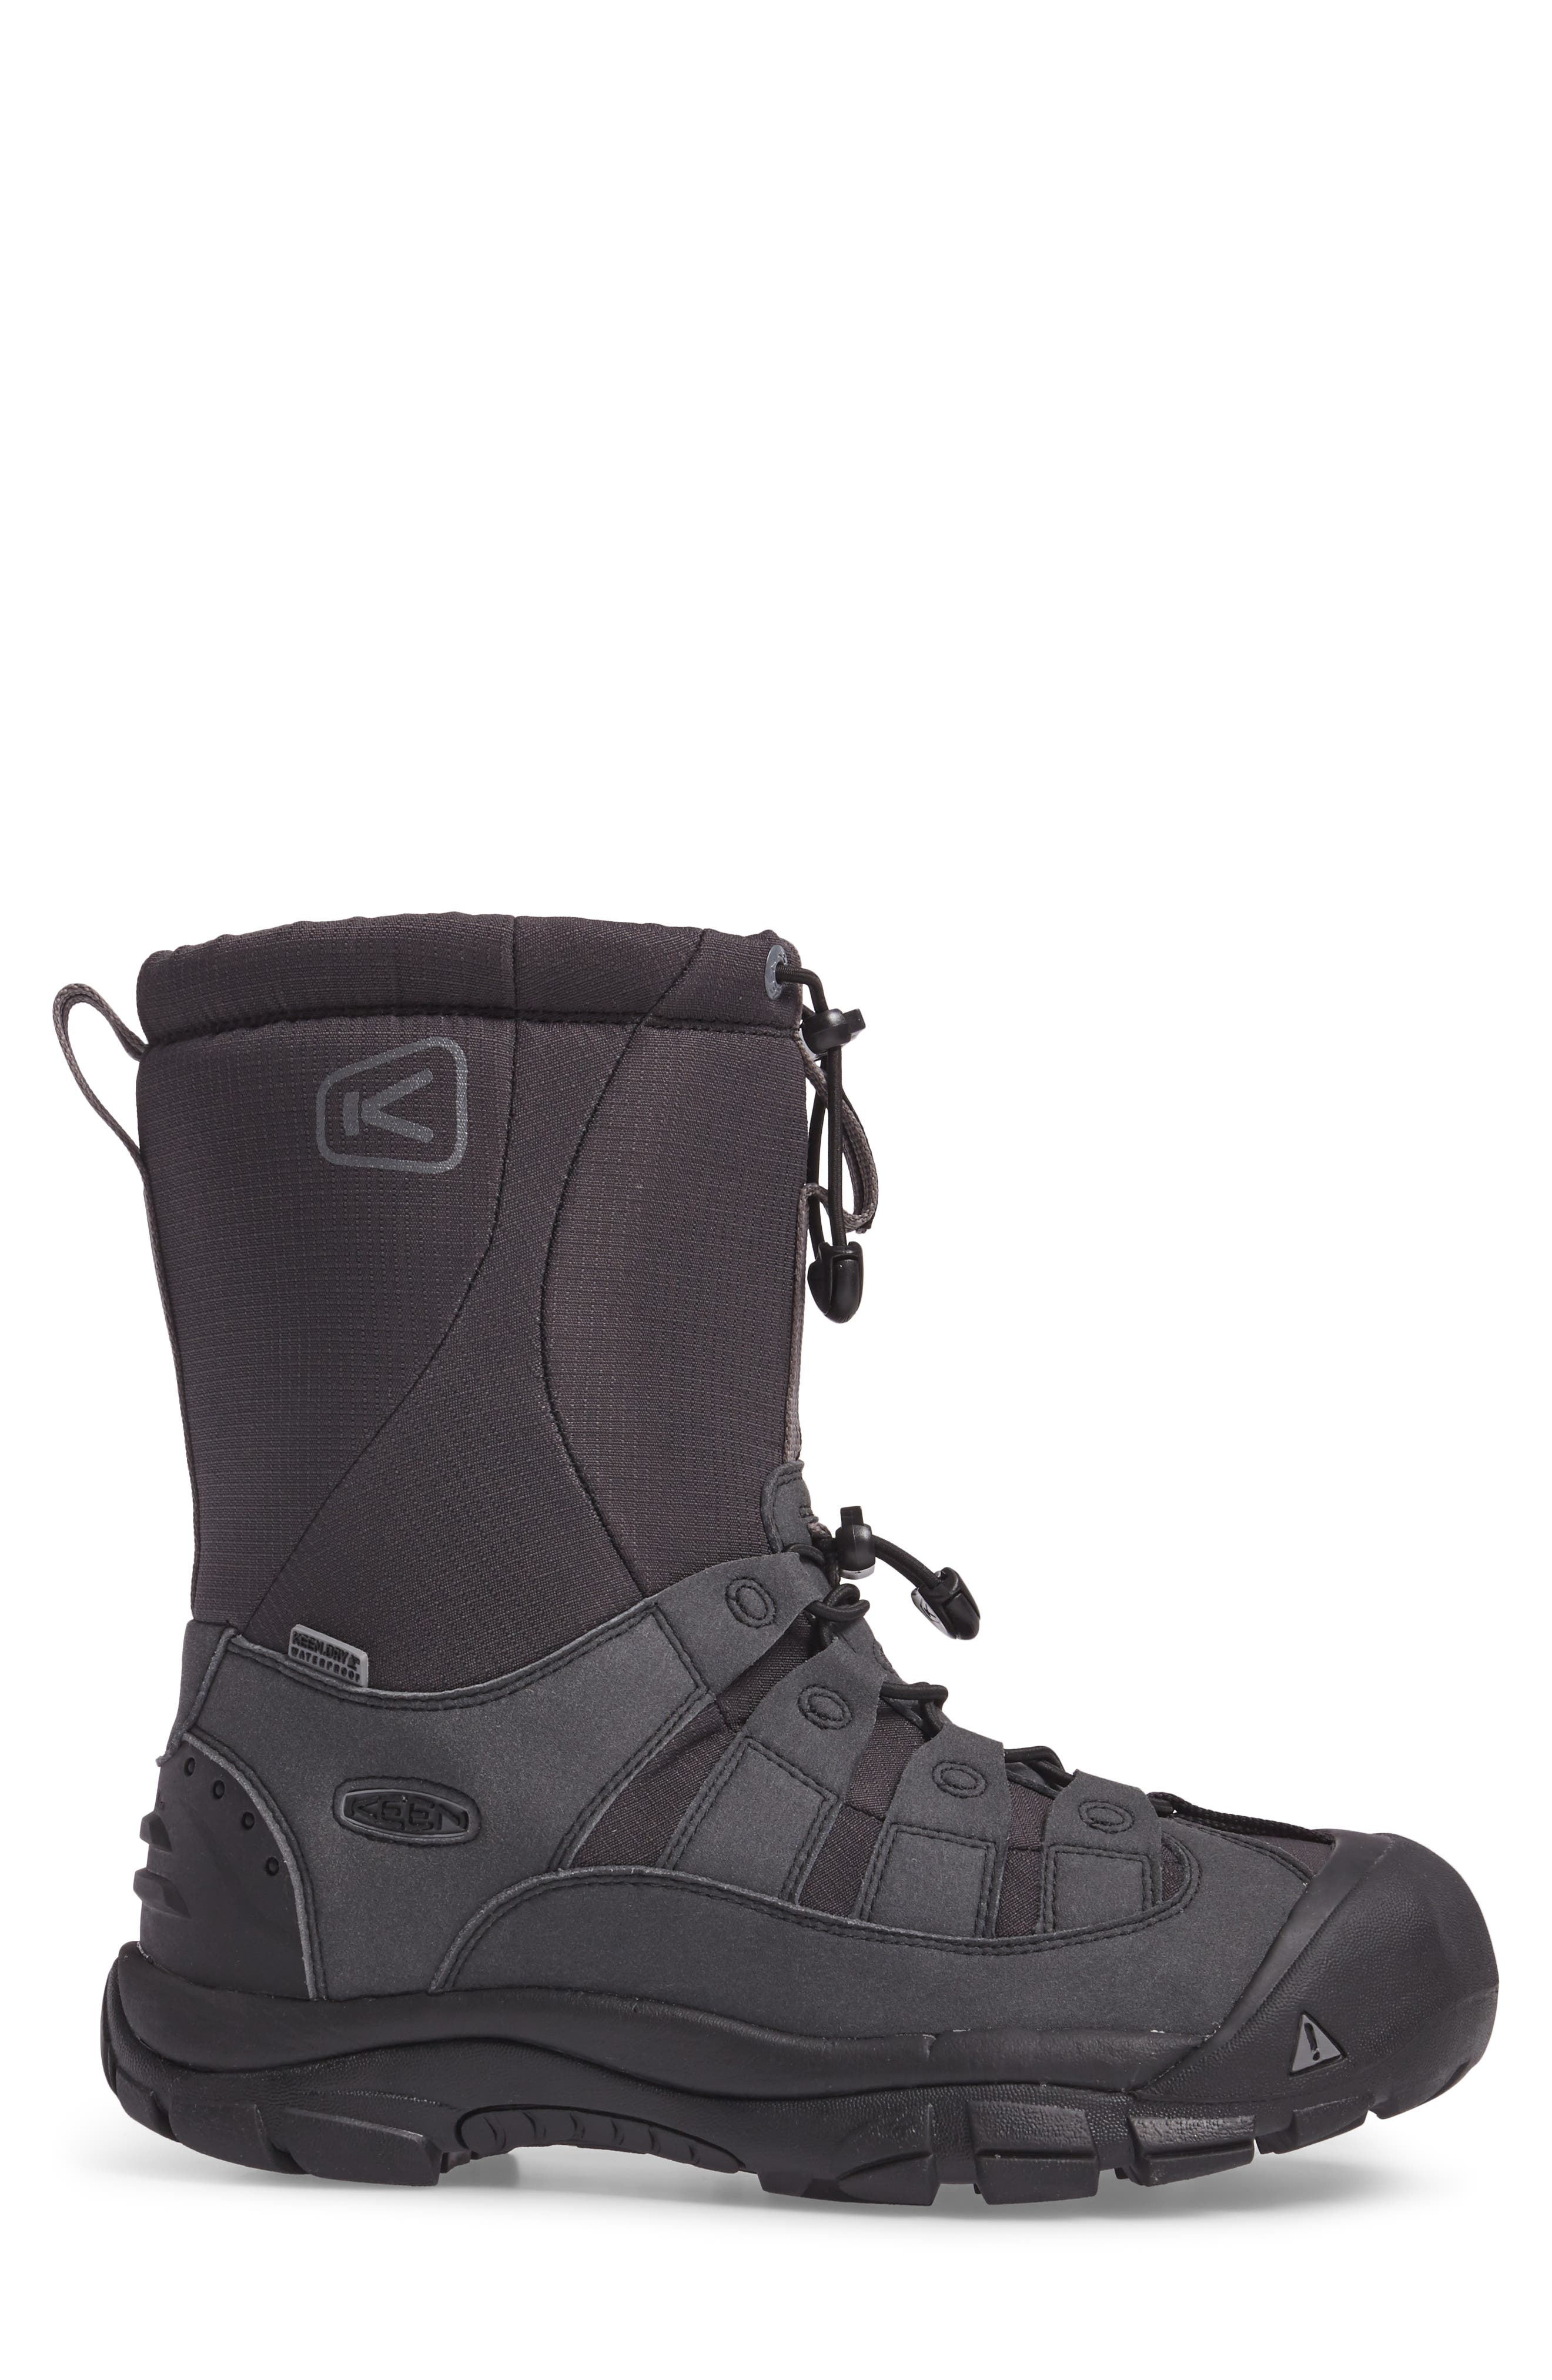 Winterport II Waterproof Insulated Snow Boot,                             Alternate thumbnail 3, color,                             Black/ Frost Gray